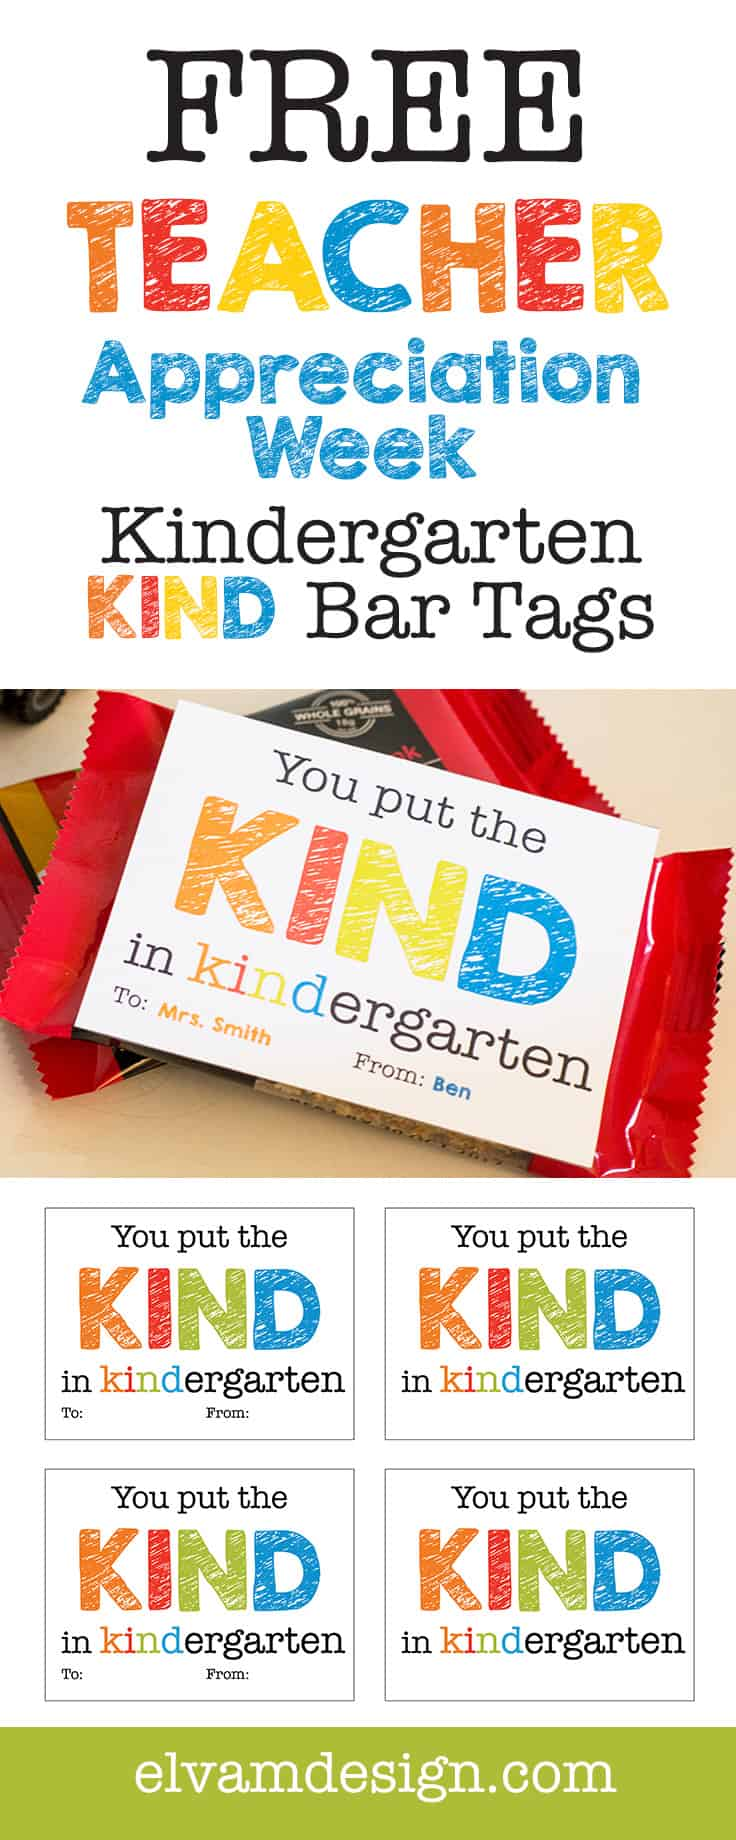 Free Kindergarten Teacher Appreciation Week Printable from Elvamdesign.com. Simply download, print, and attach your tag to a KIND granola bar for a simple and sweet teacher appreciation week gift.